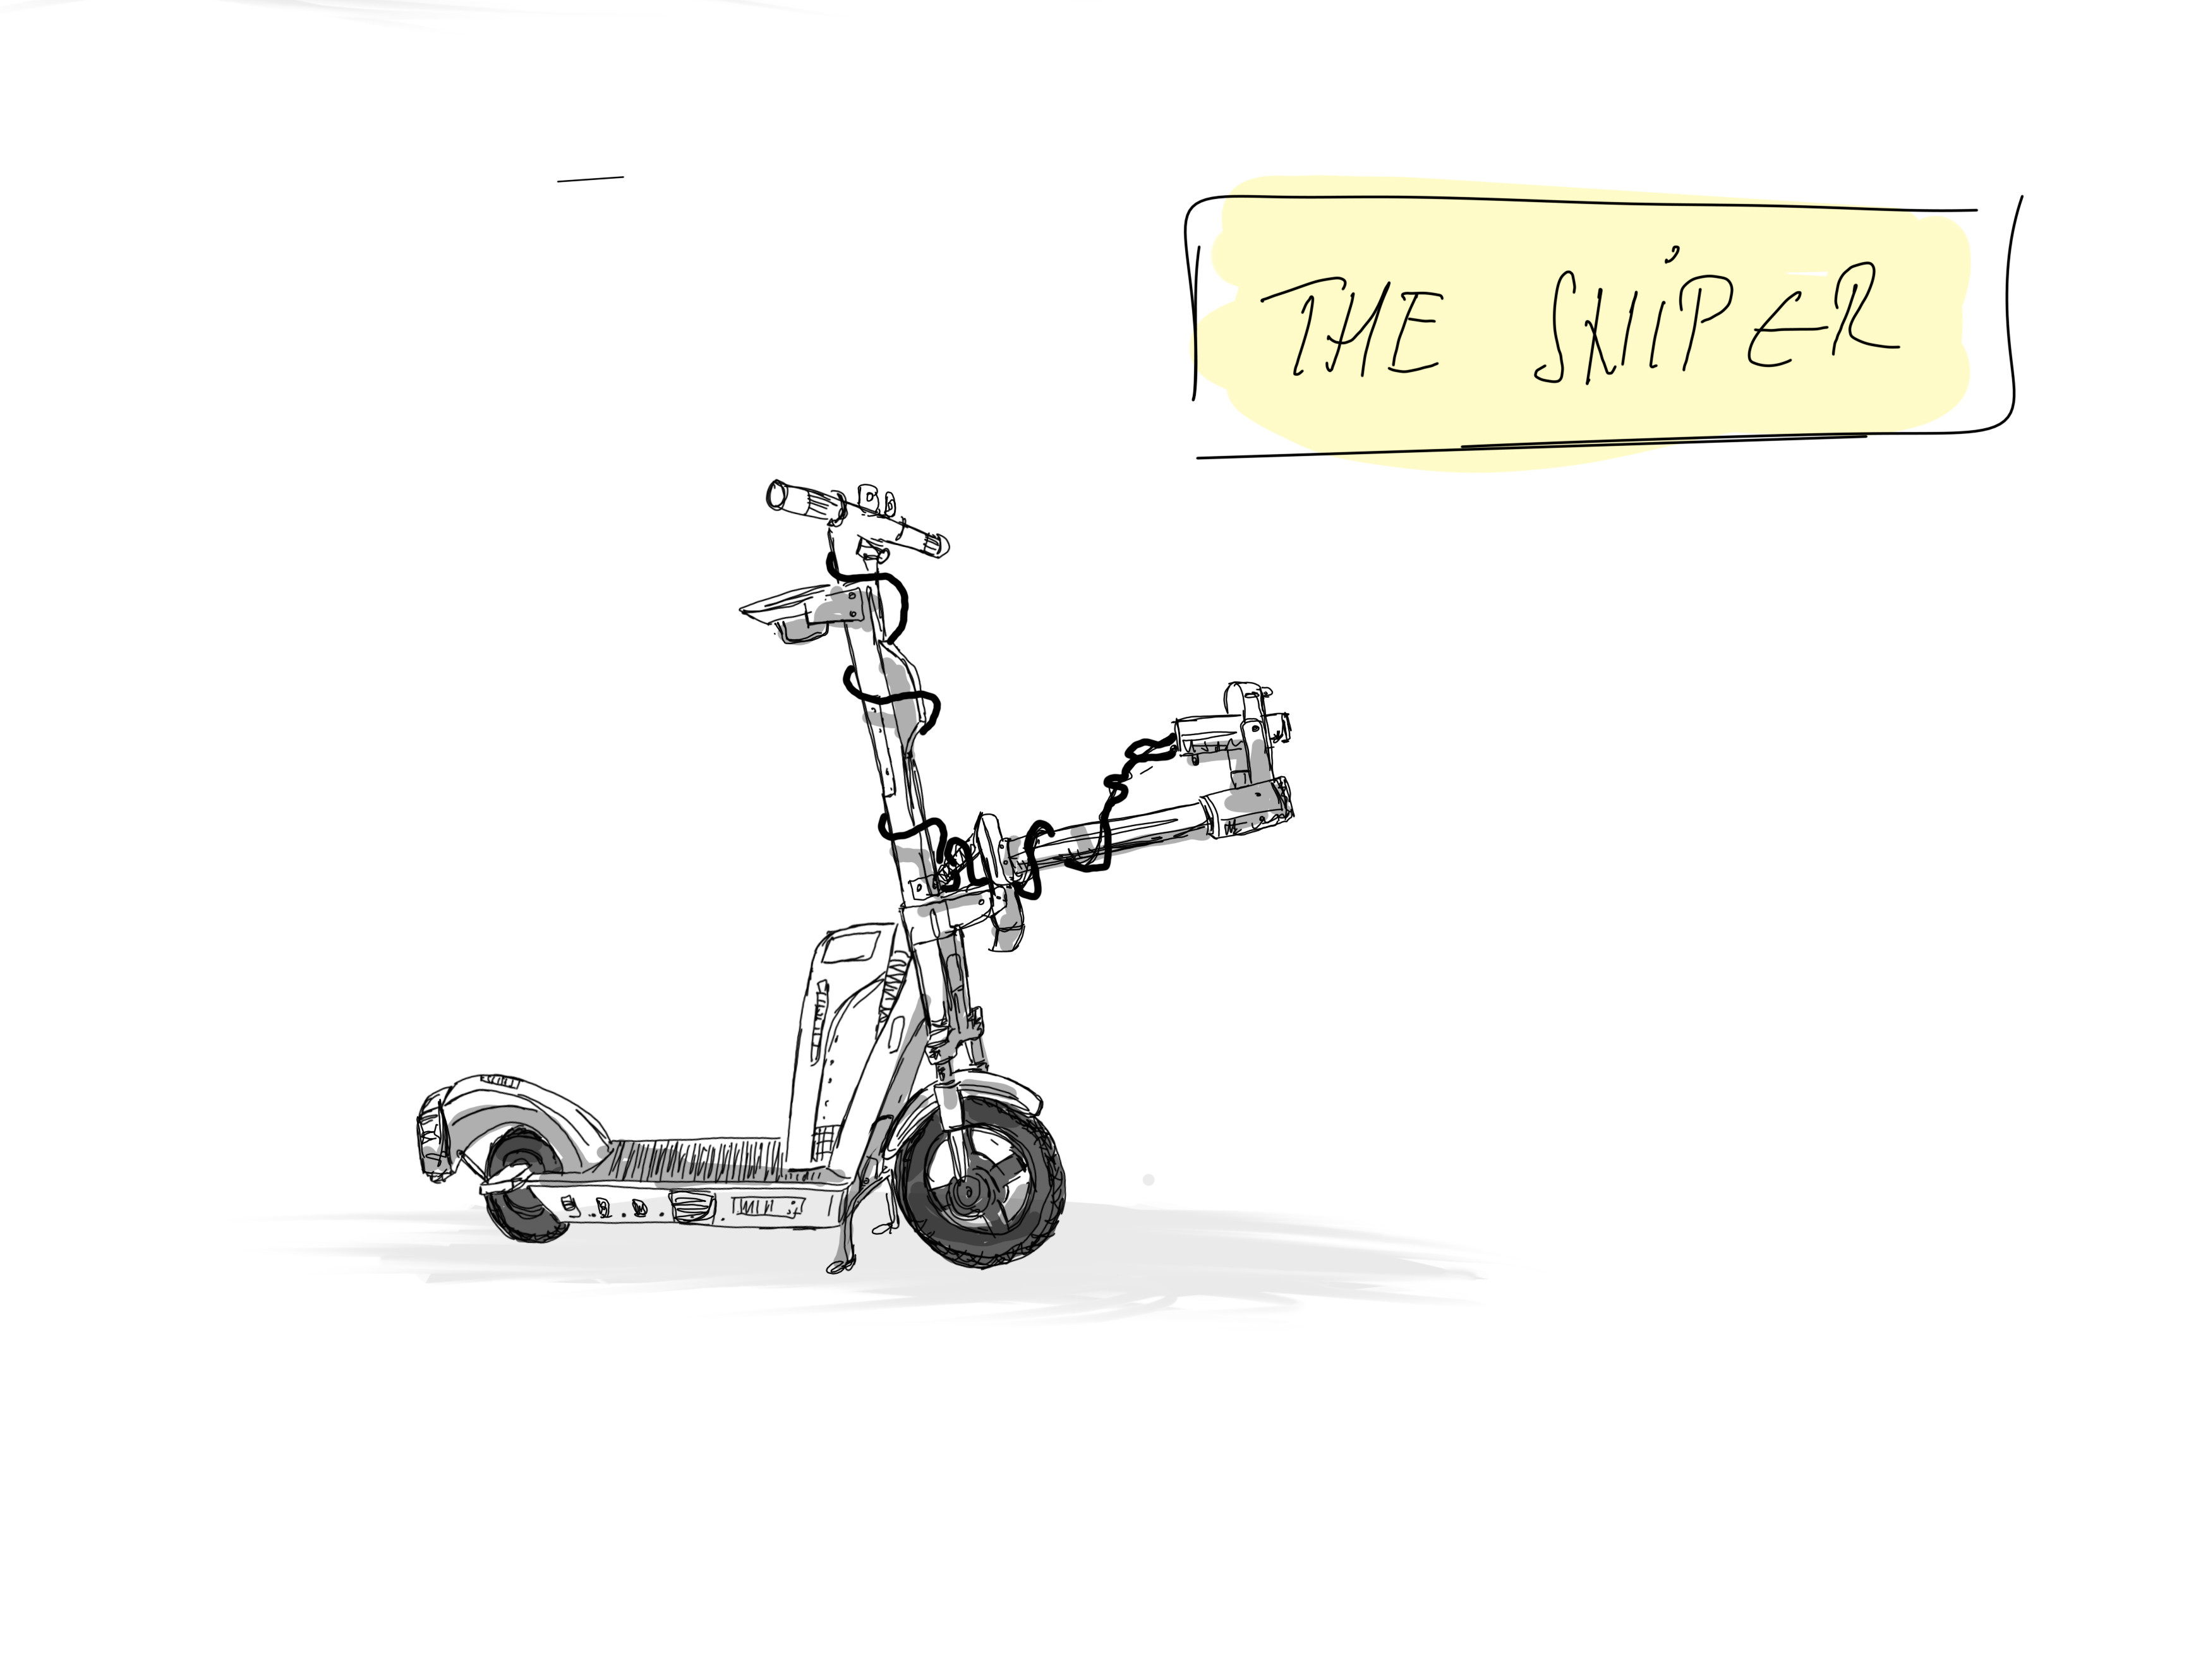 Vehicle 05. The Sniper